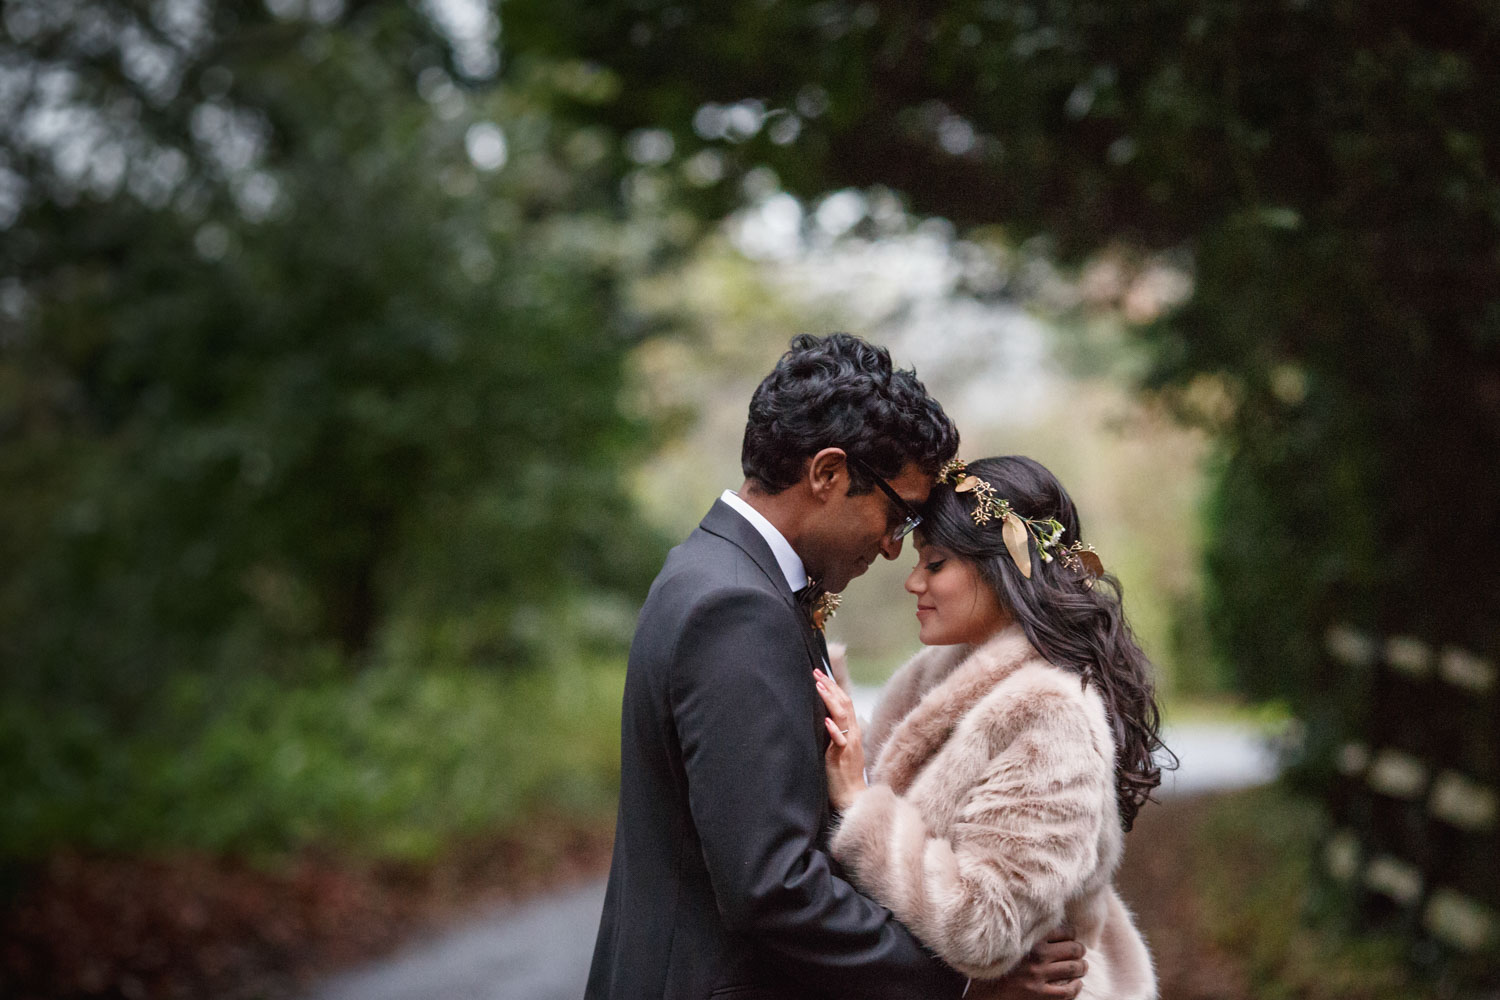 Wedding photographer Surrey Kent London